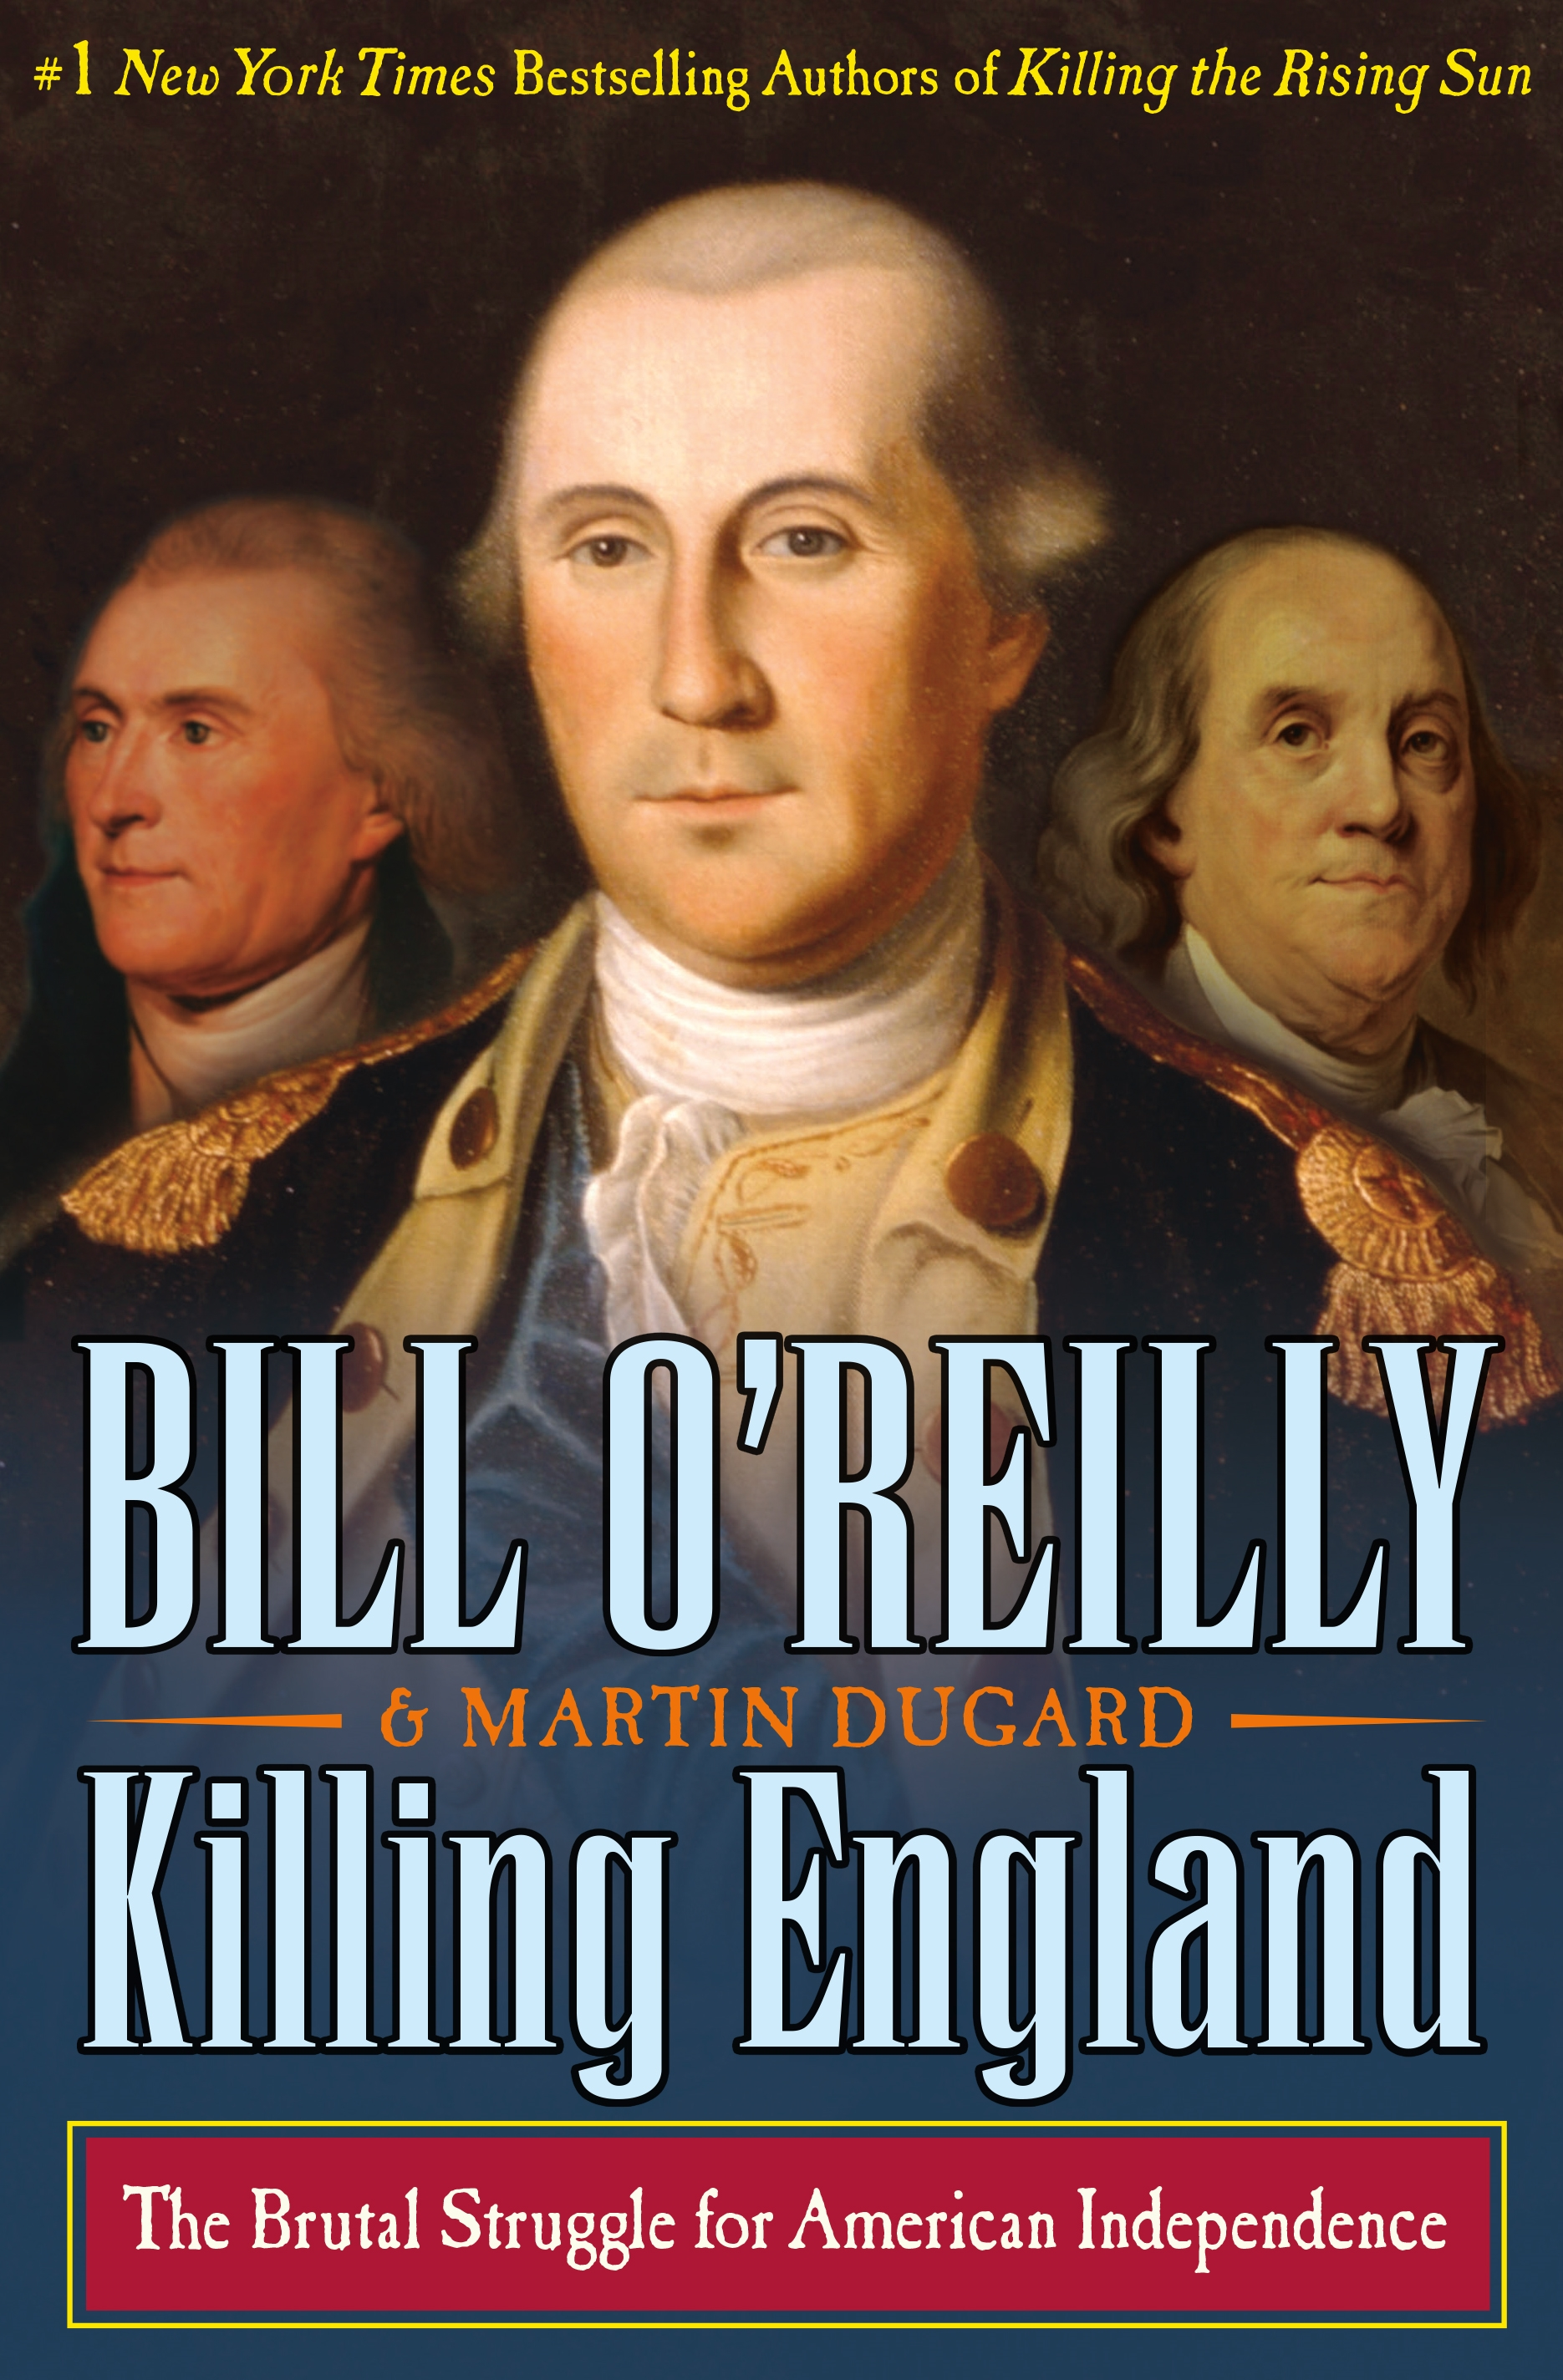 Killing England [electronic resource] : The Brutal Struggle for American Independence